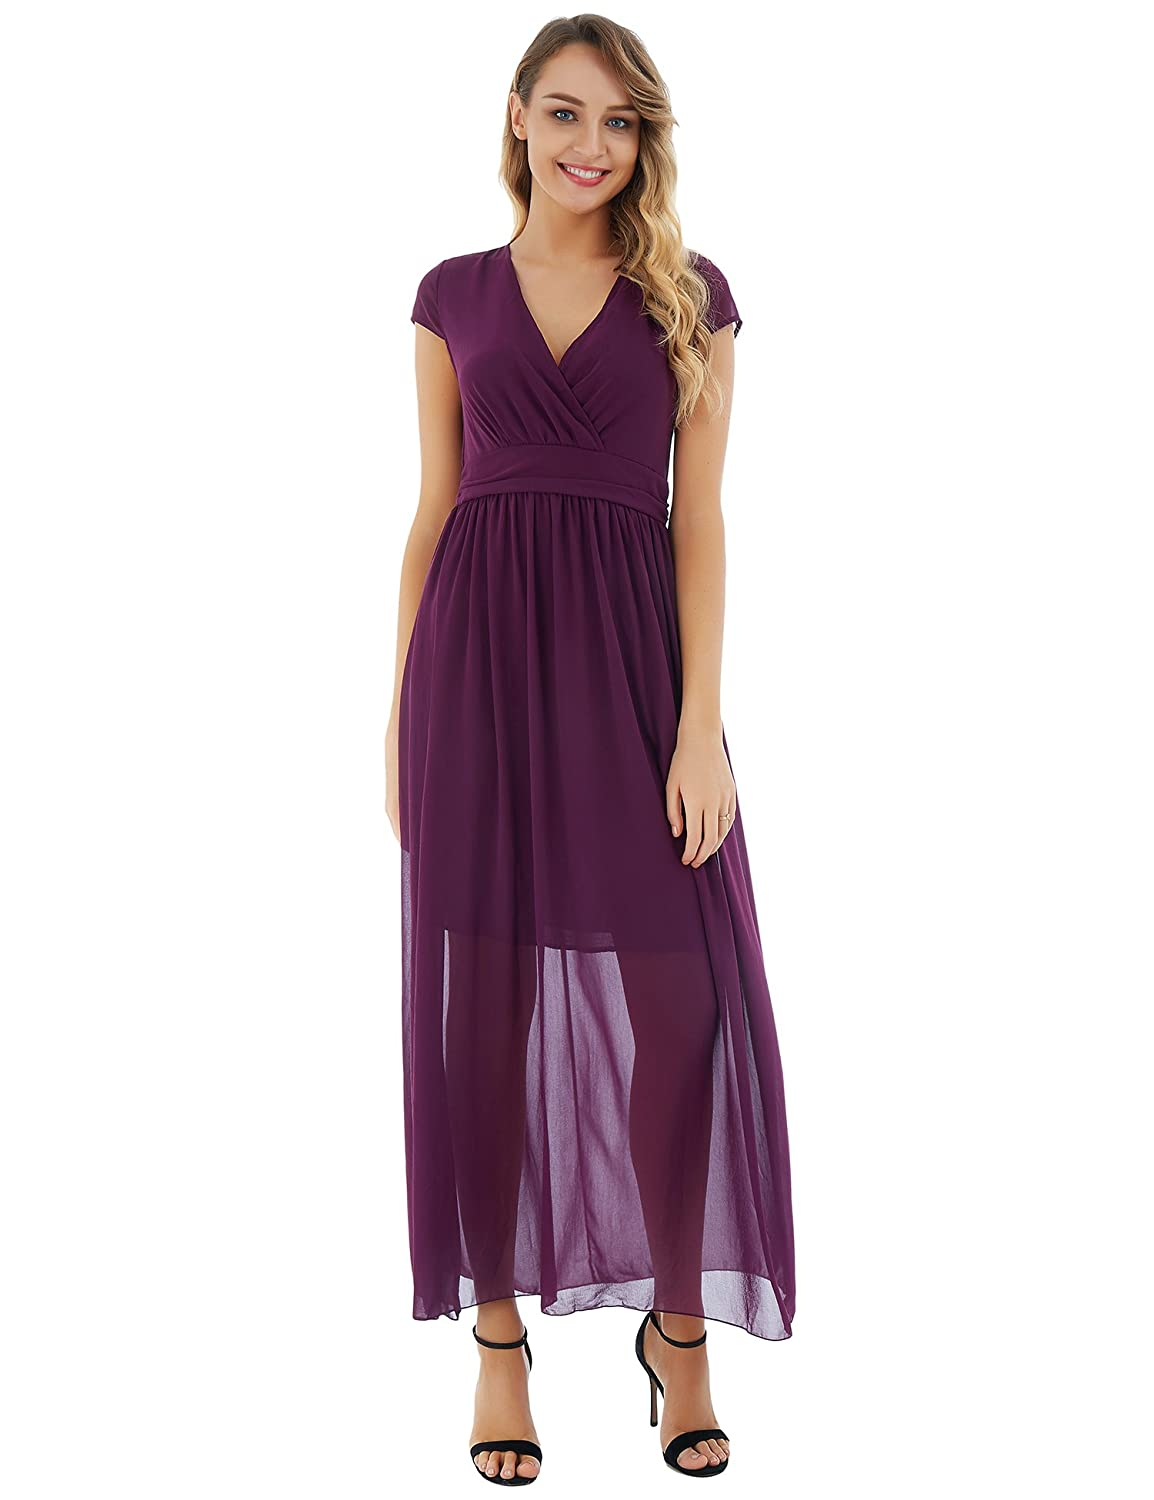 8026b465821 Top 10 wholesale Chiffon Ankle Length Dress - Chinabrands.com